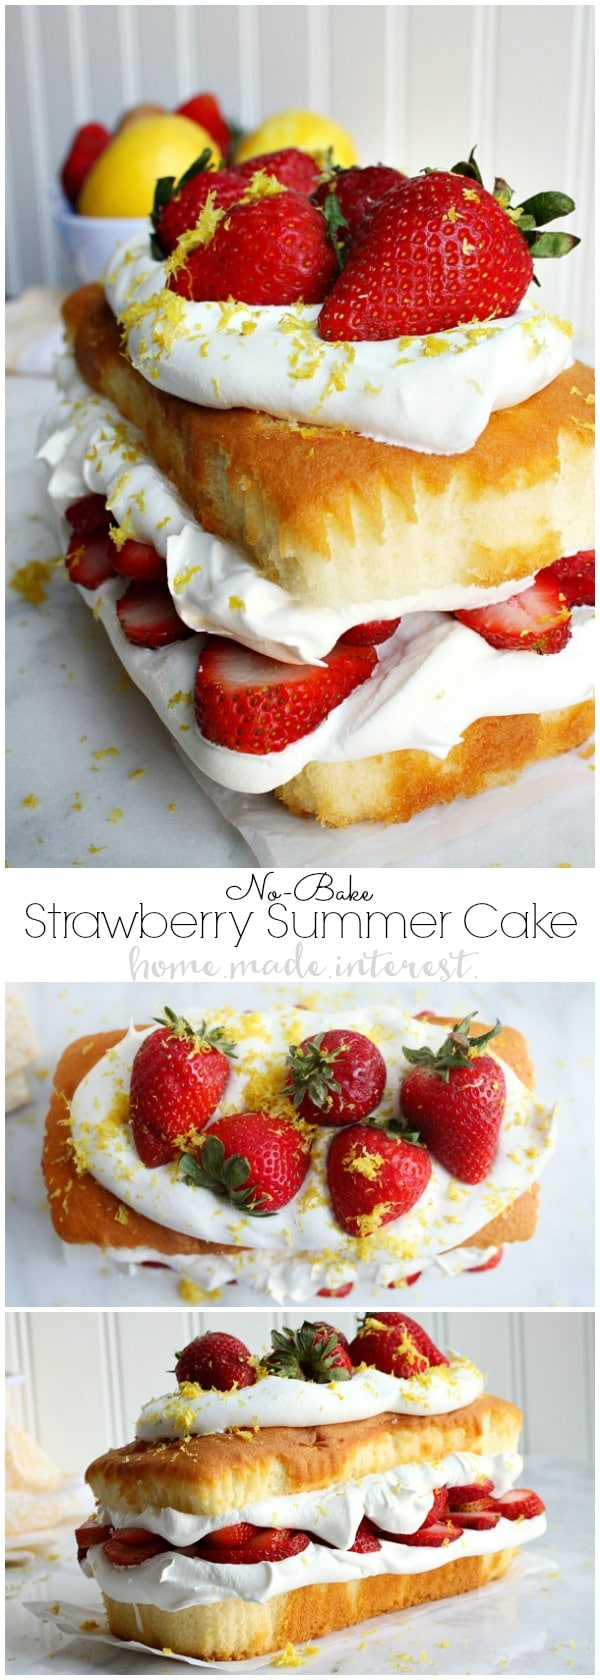 This light and fluffy no bake cake recipe is filled with the flavors of summer. A three layer pound cake stuffed with fluffy whipped topping, sweet strawberries, and topped with a sprinkle of lemon zest. This no bake strawberry shortcake is great for parties because you can make it in just a few minutes without ever turning on your oven.